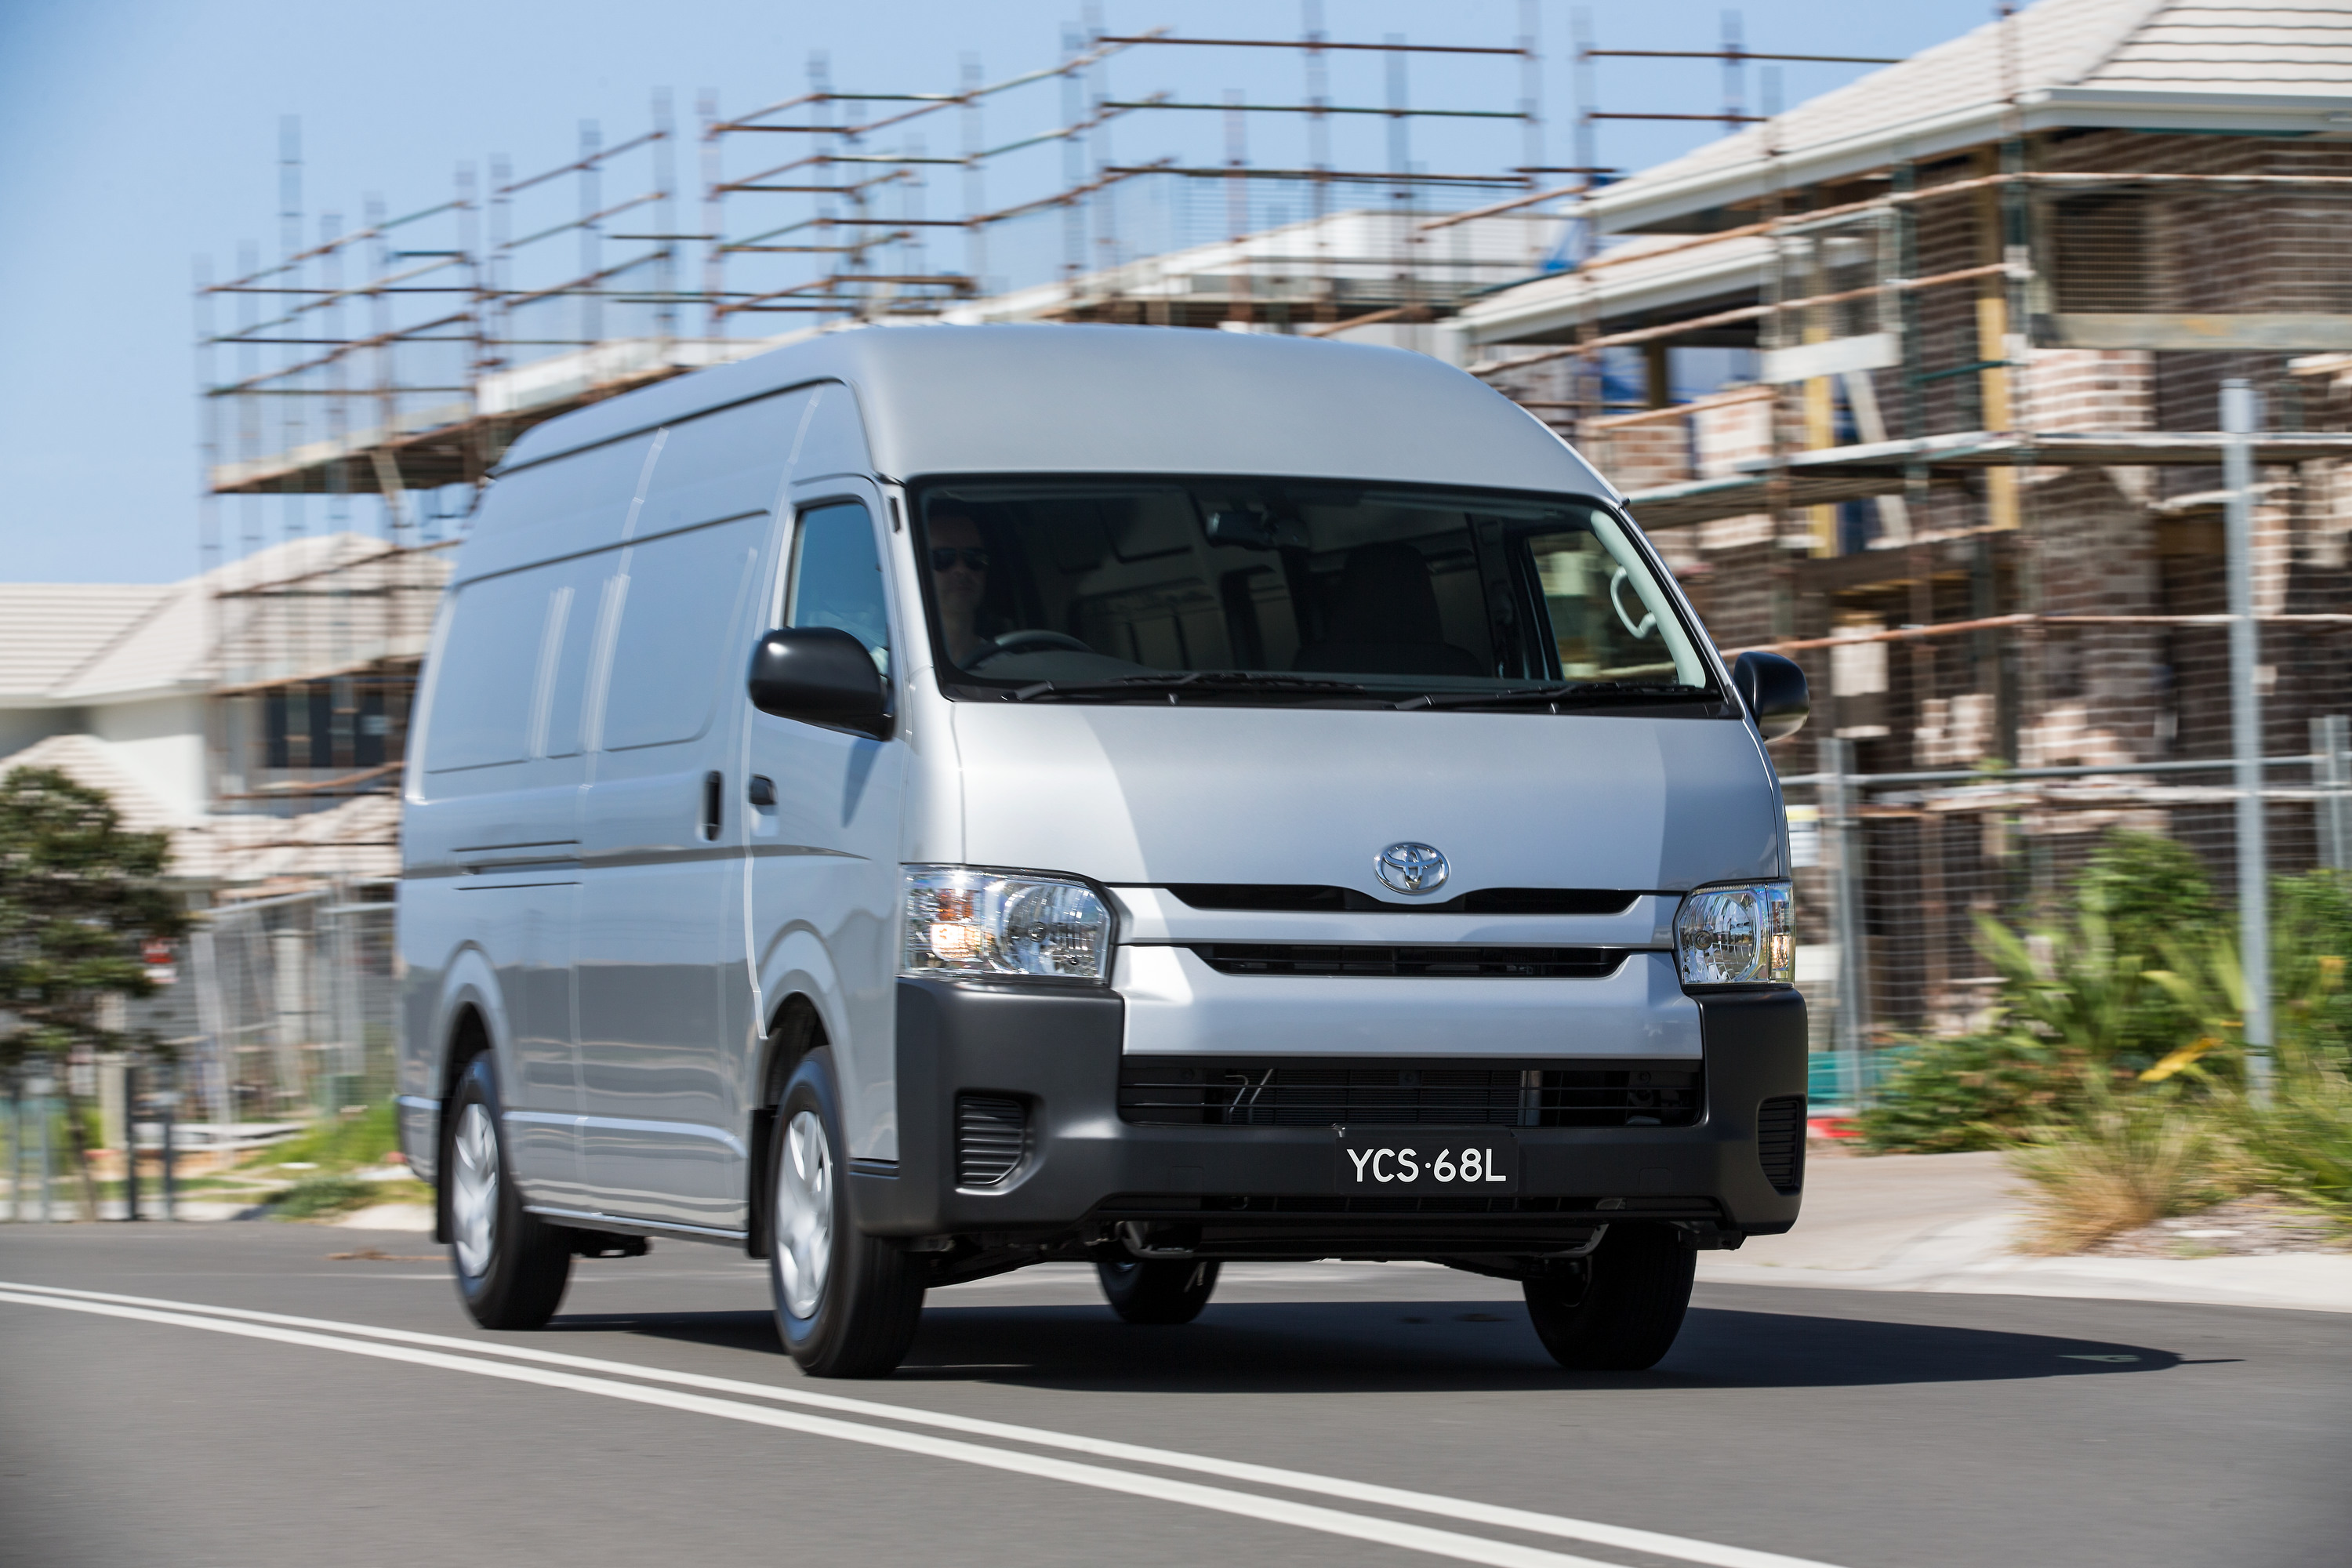 toyota hiace gets a range of updates photos 1 of 8. Black Bedroom Furniture Sets. Home Design Ideas